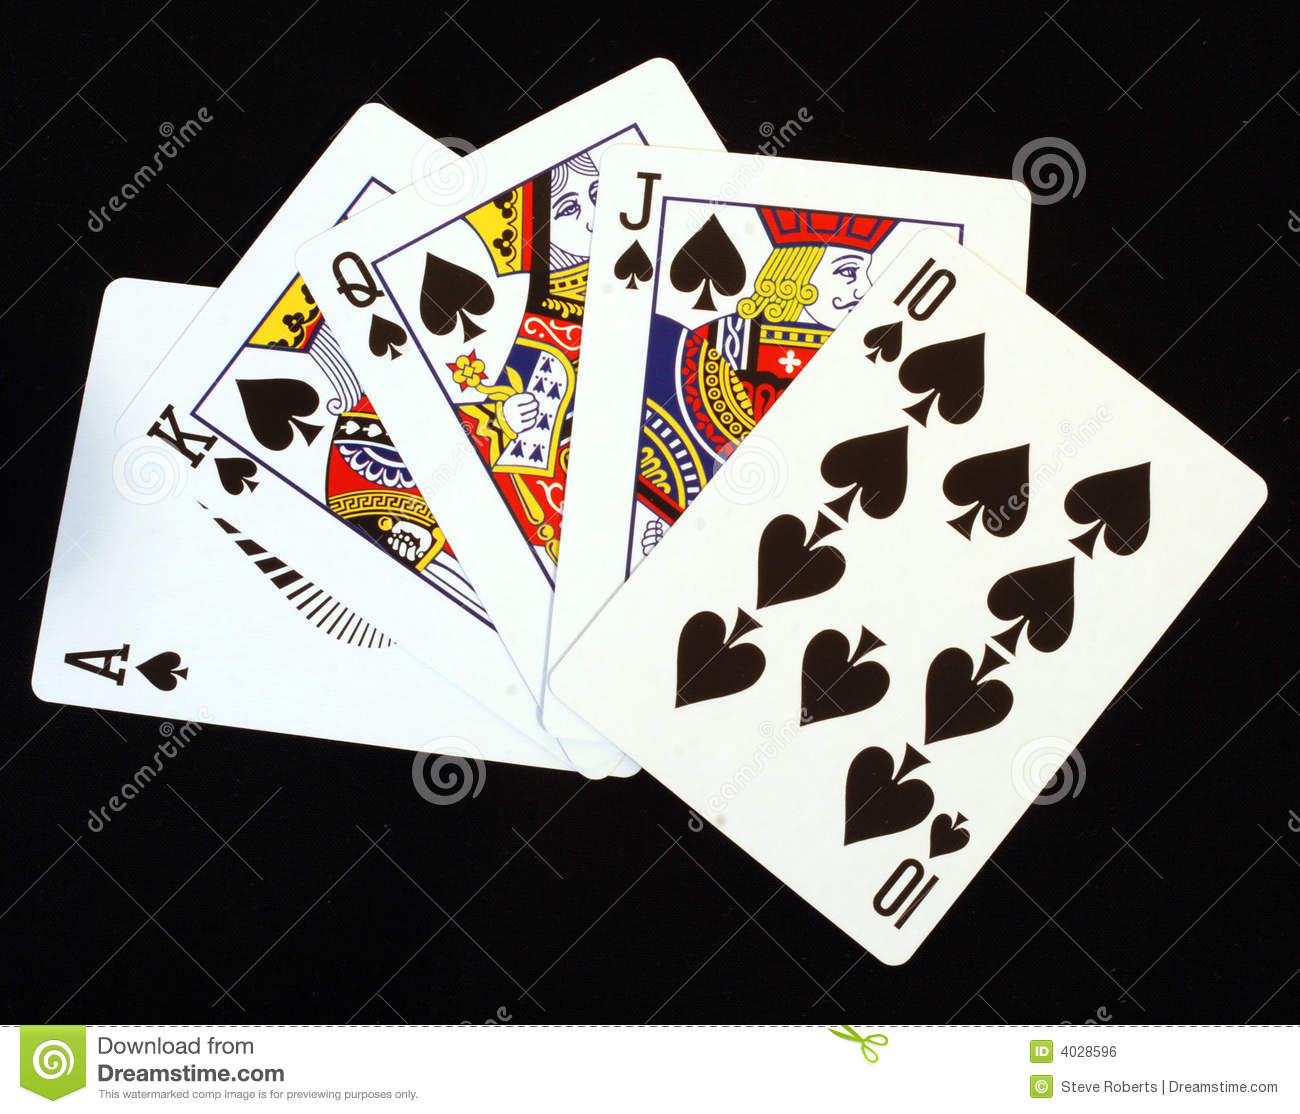 Royal Flush In Spades stock photo. Image of chance, face